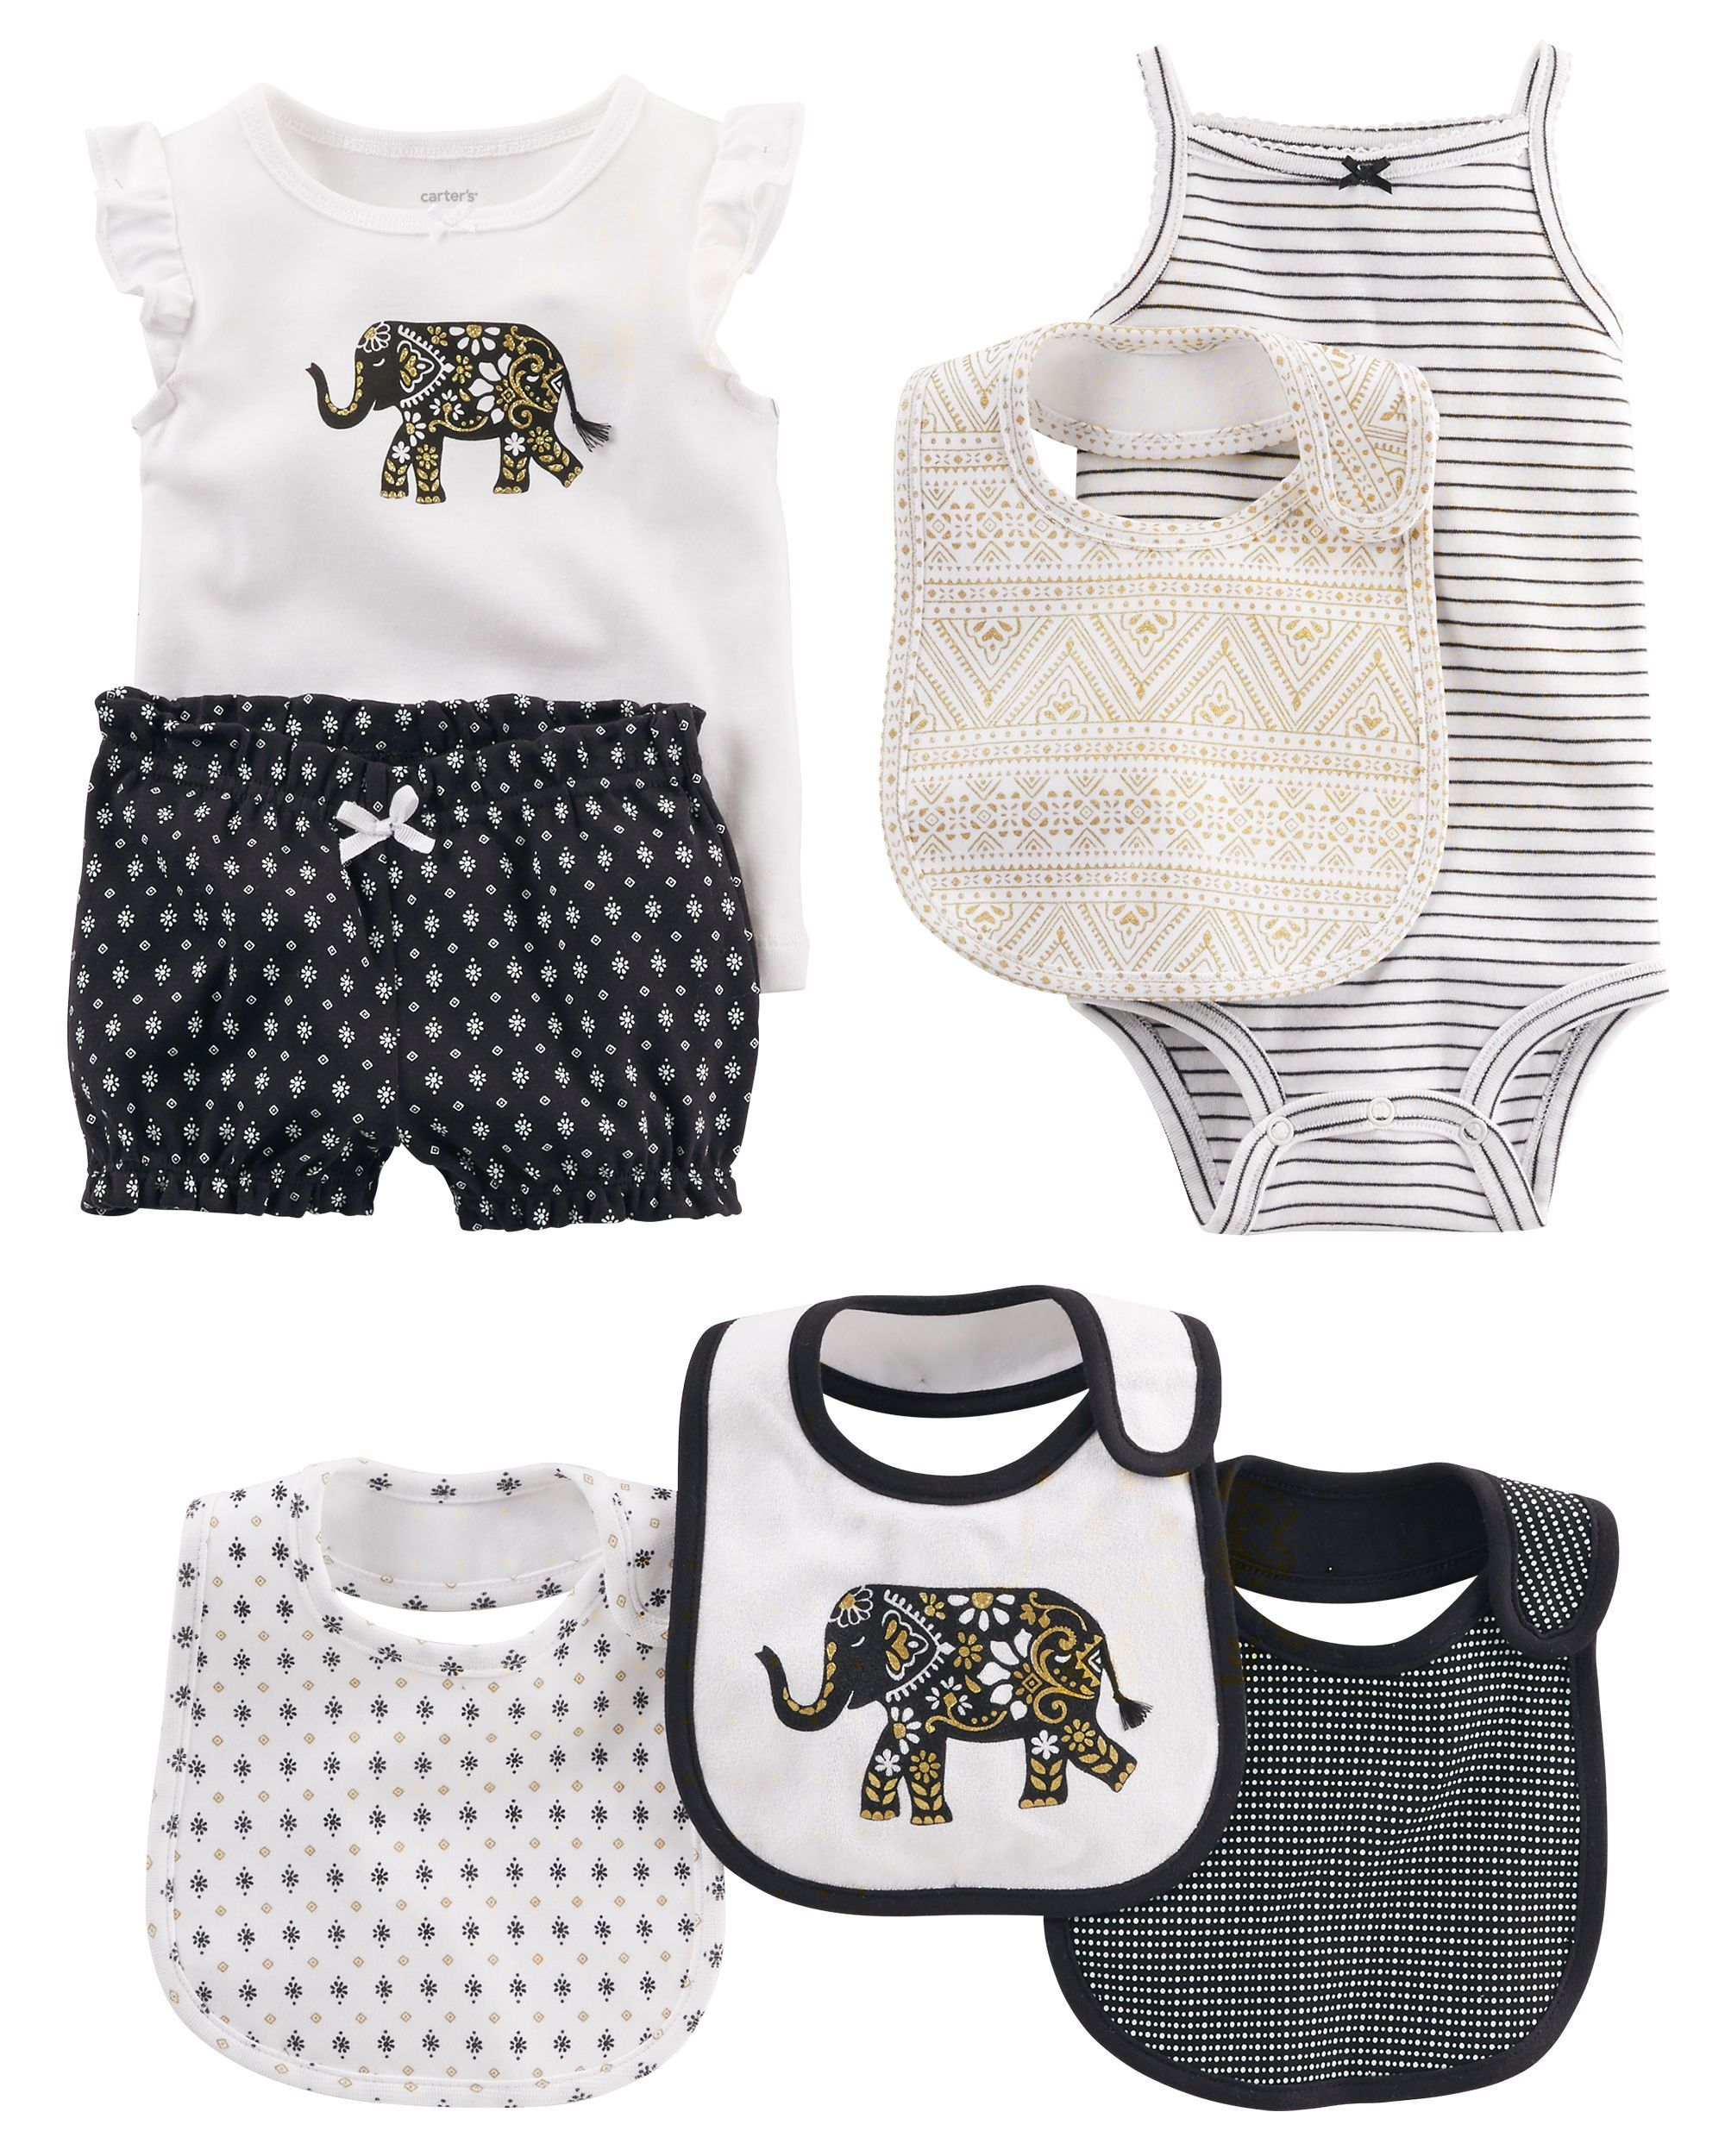 CARFEB2S17 from Carters Shop clothing & accessories from a